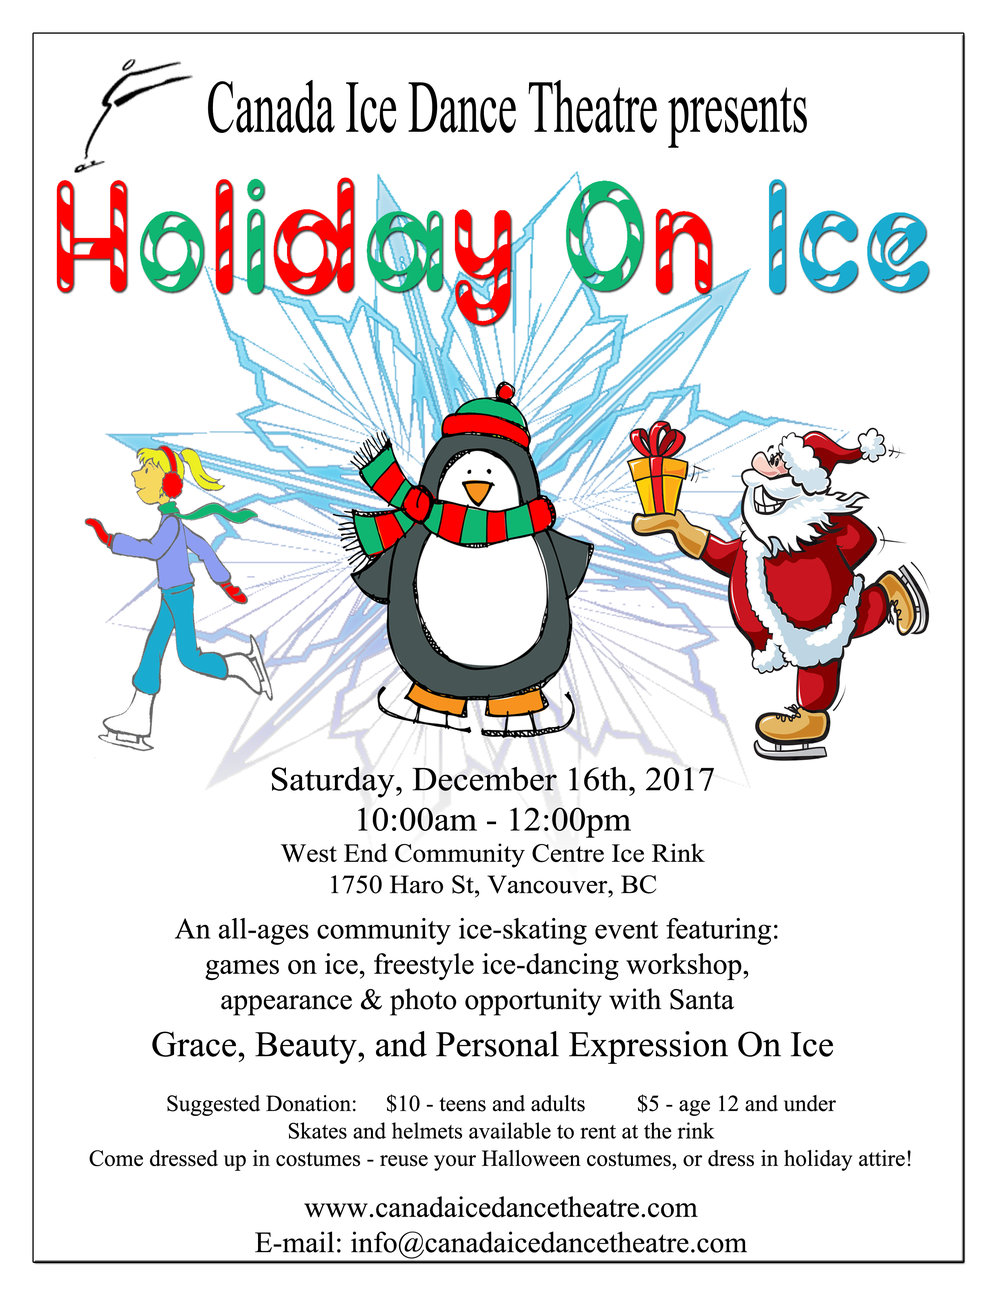 Come and join us for a fun-filled Holiday-themed Community Ice Skating event and get into the spirit of Christmas by participating in one of Canada's traditional winter activities.